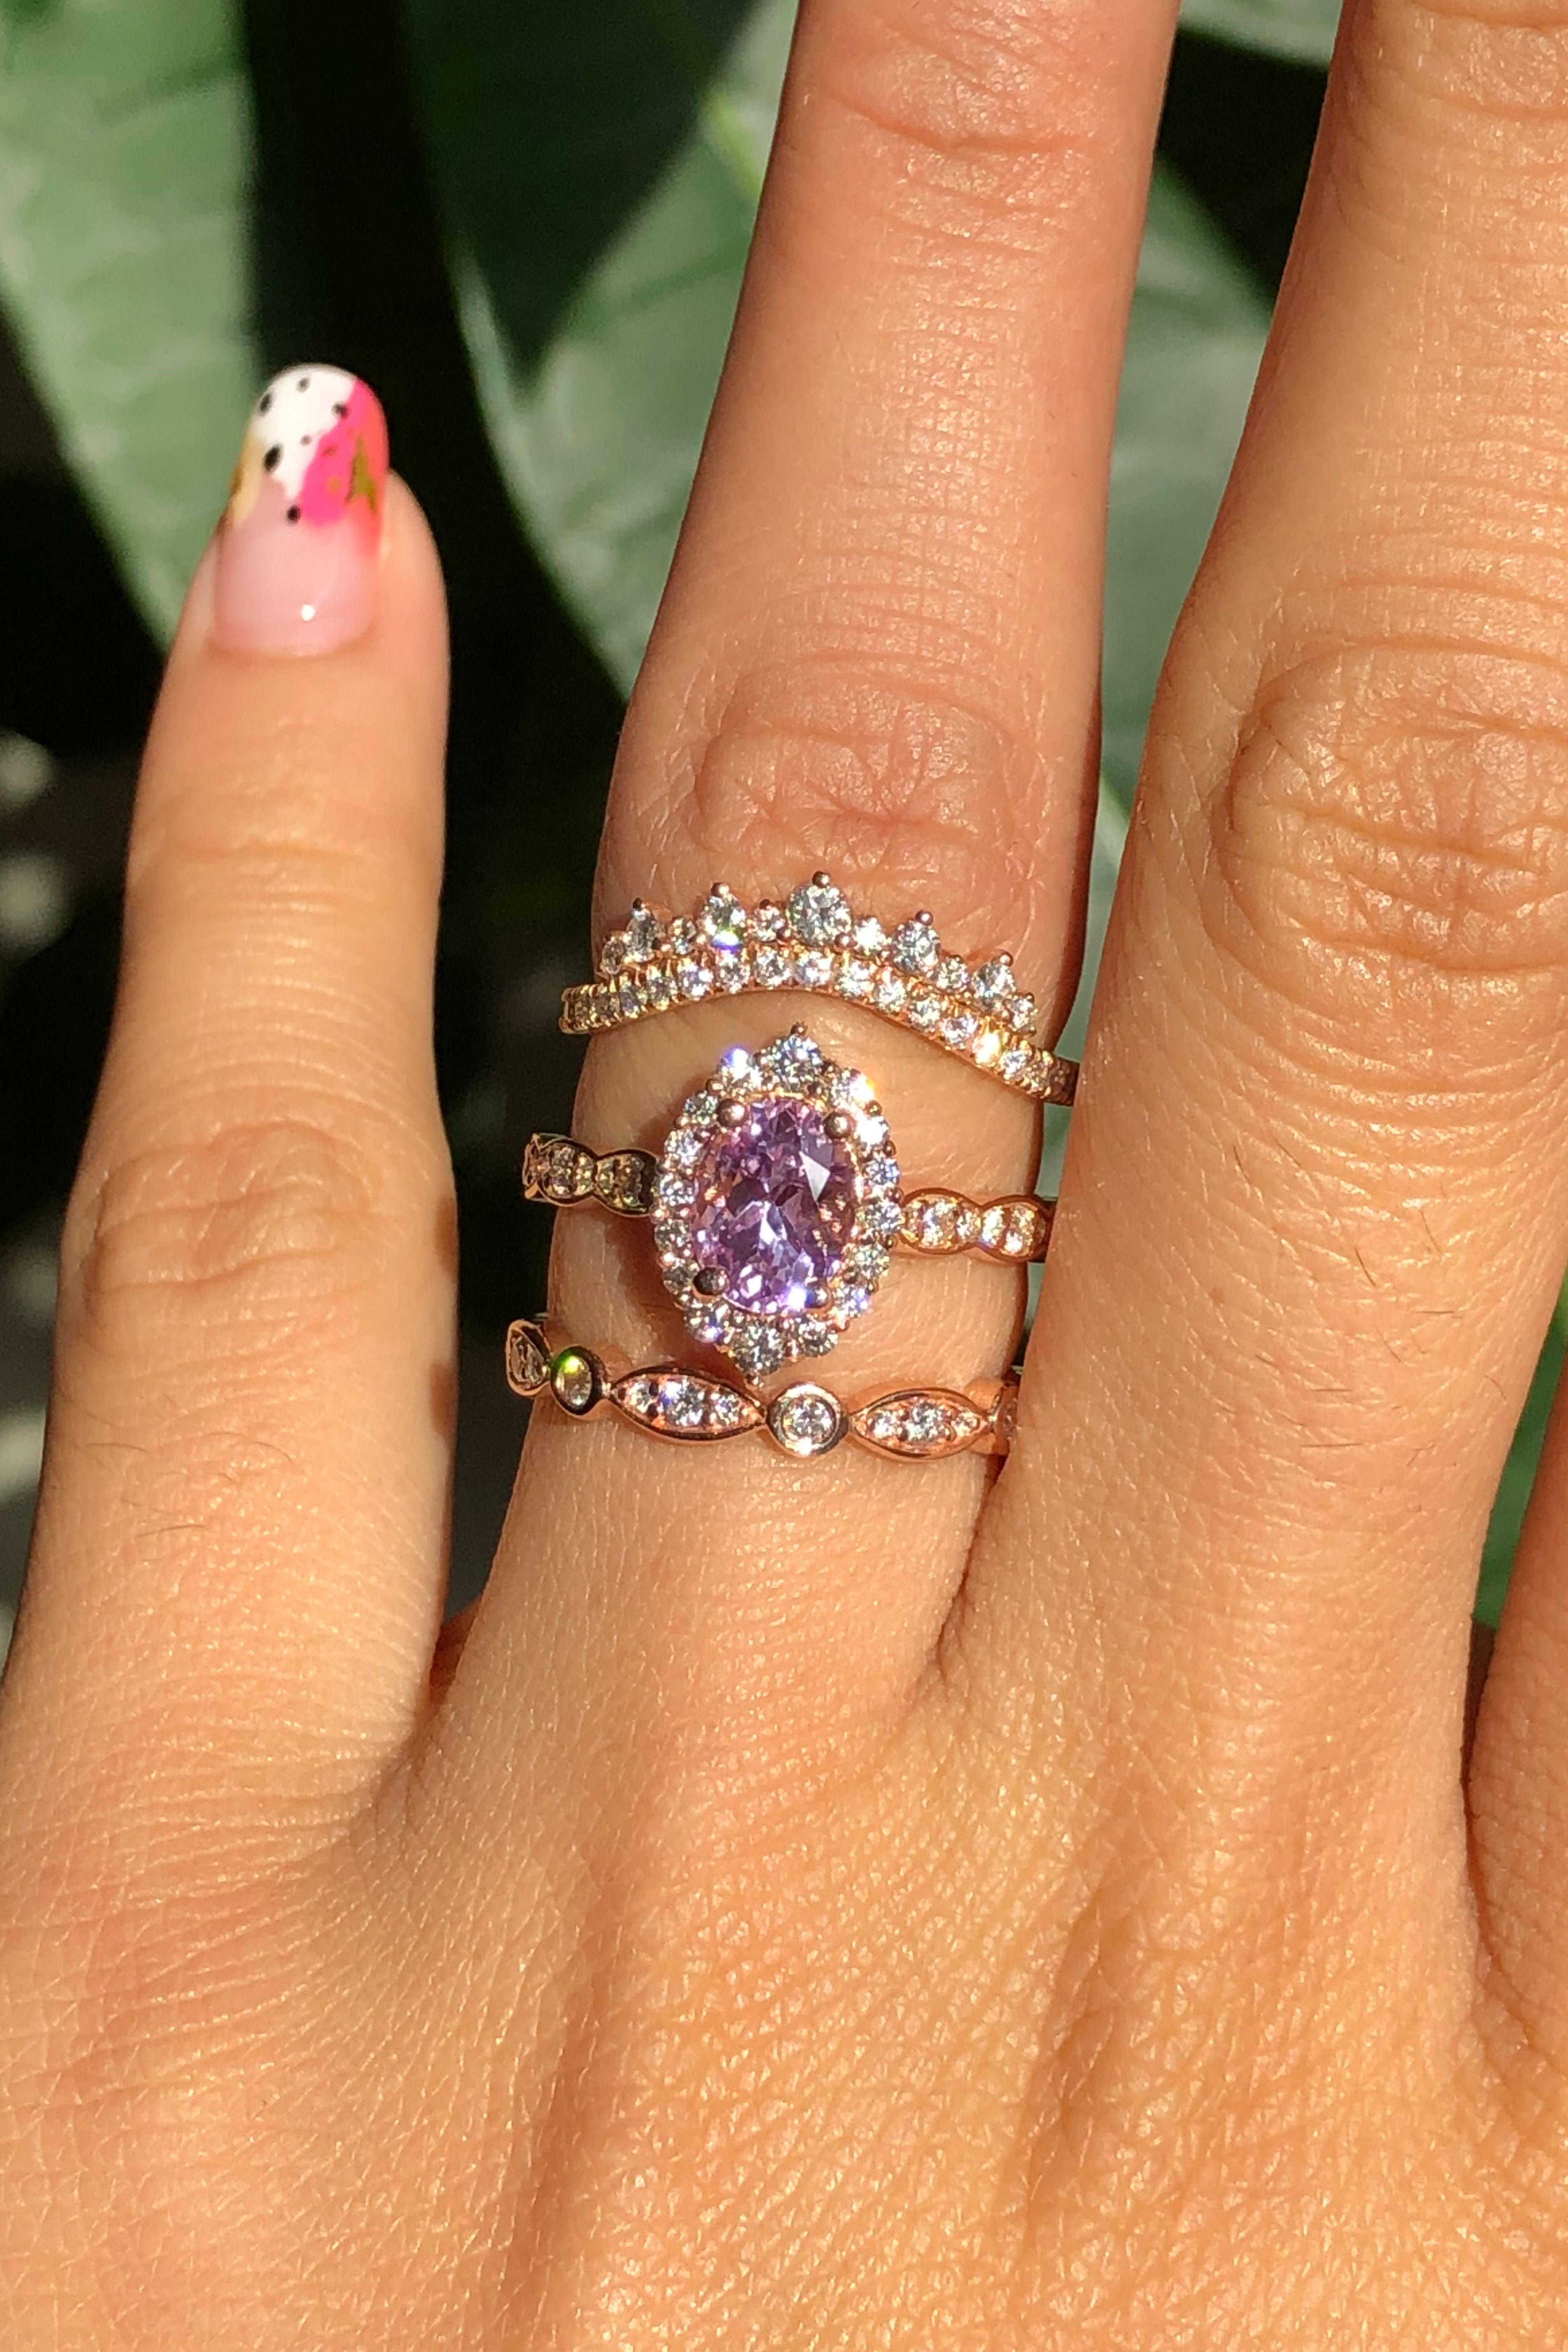 On top is a Curved Crown Diamond Wedding Band. Below, is